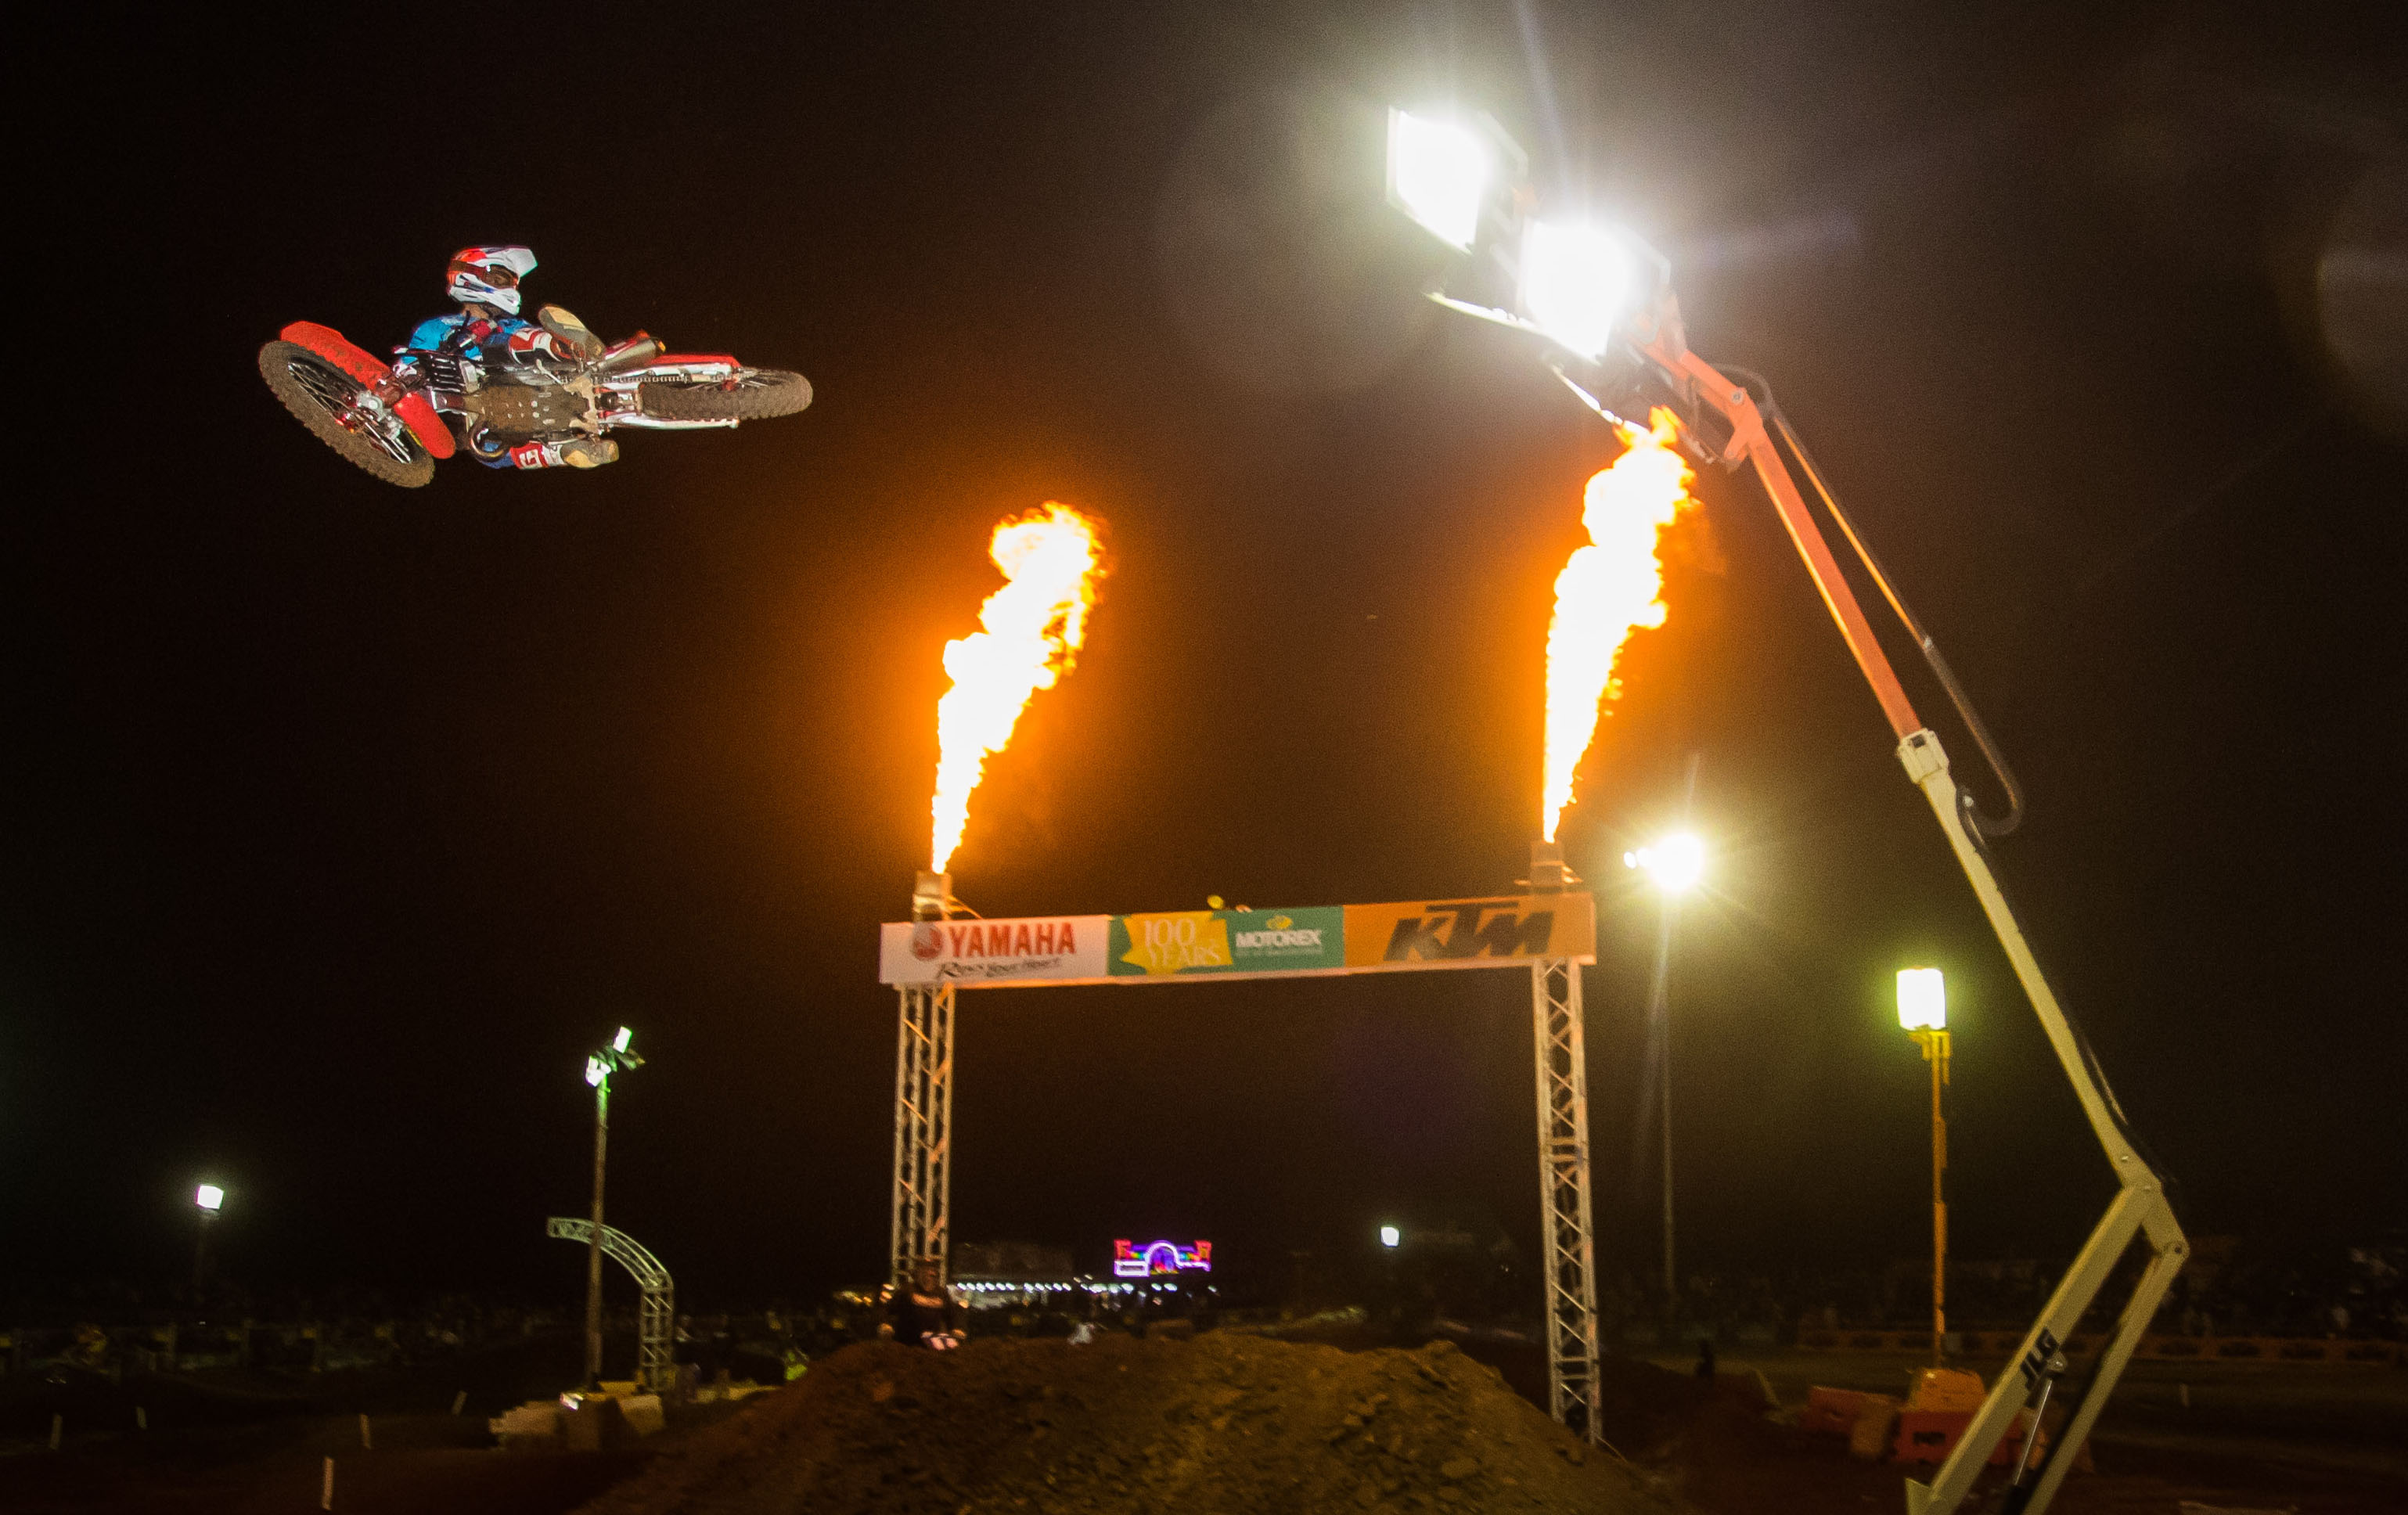 PHOTO GALLERY: AUSTRALIAN SUPERCROSS ROUND TWO